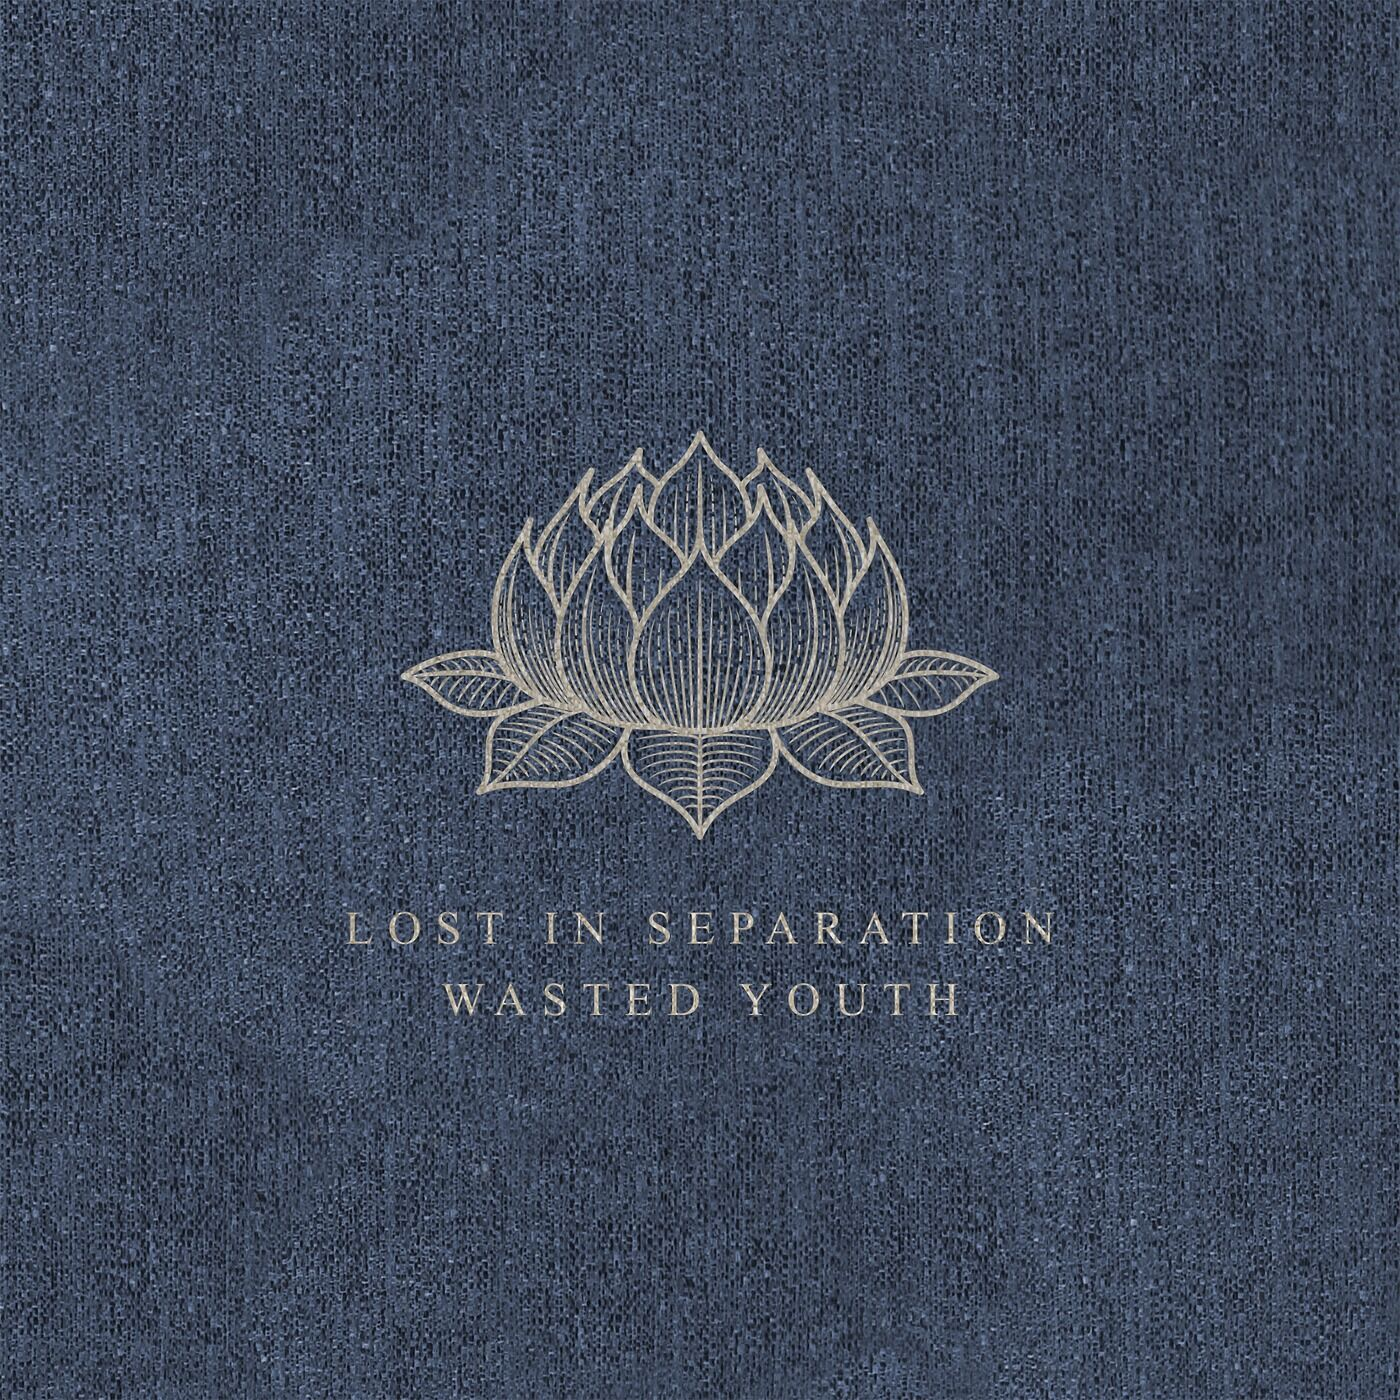 Lost in Separation - Wasted Youth [single] (2017)